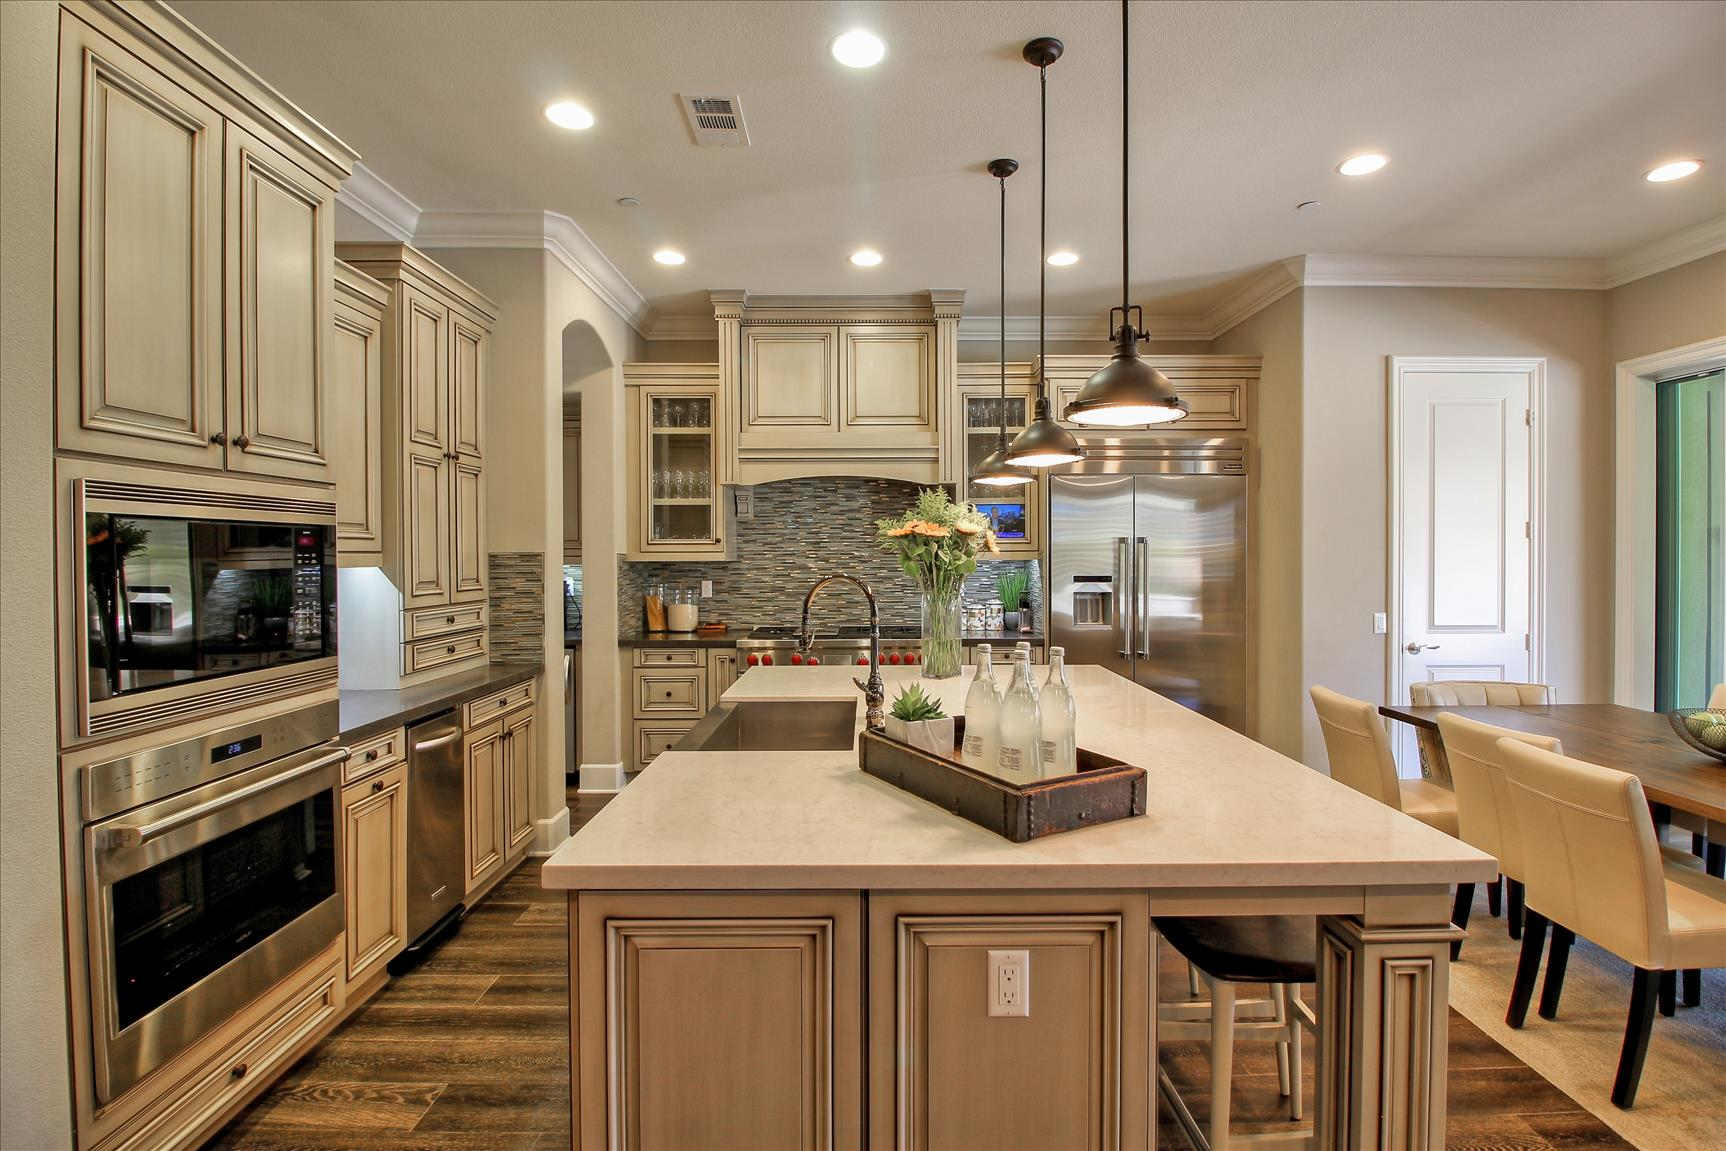 17471 Kennebunk Ln, Huntington Beach, CA  9264917.jpg